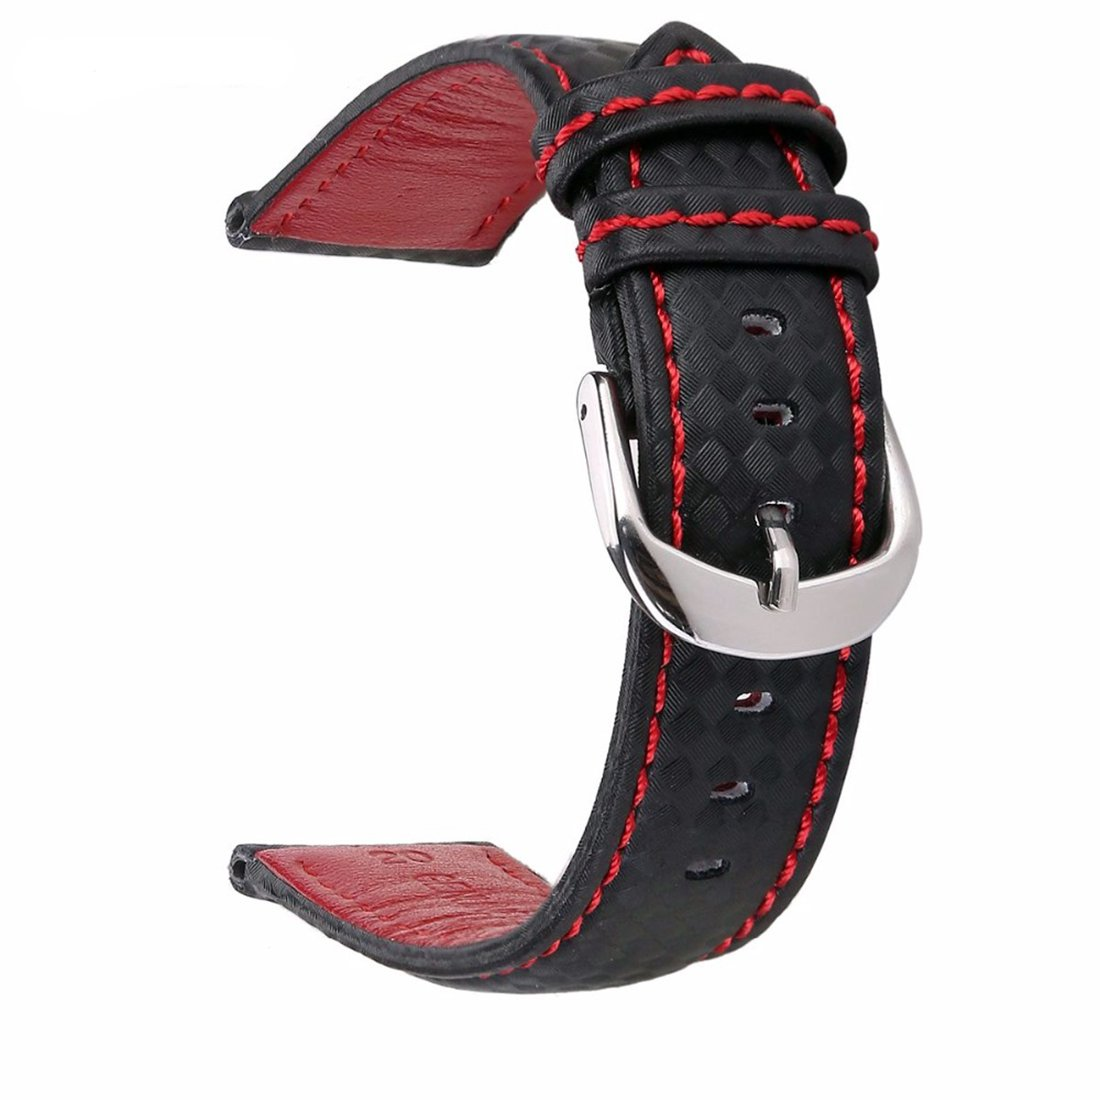 Izasky Genuine Leather Watchband - Quick Release Leather Watch Band Black with Stitched Leather Lining Stainless Steel Clasp Buckle (22mm, Black Red Thread)